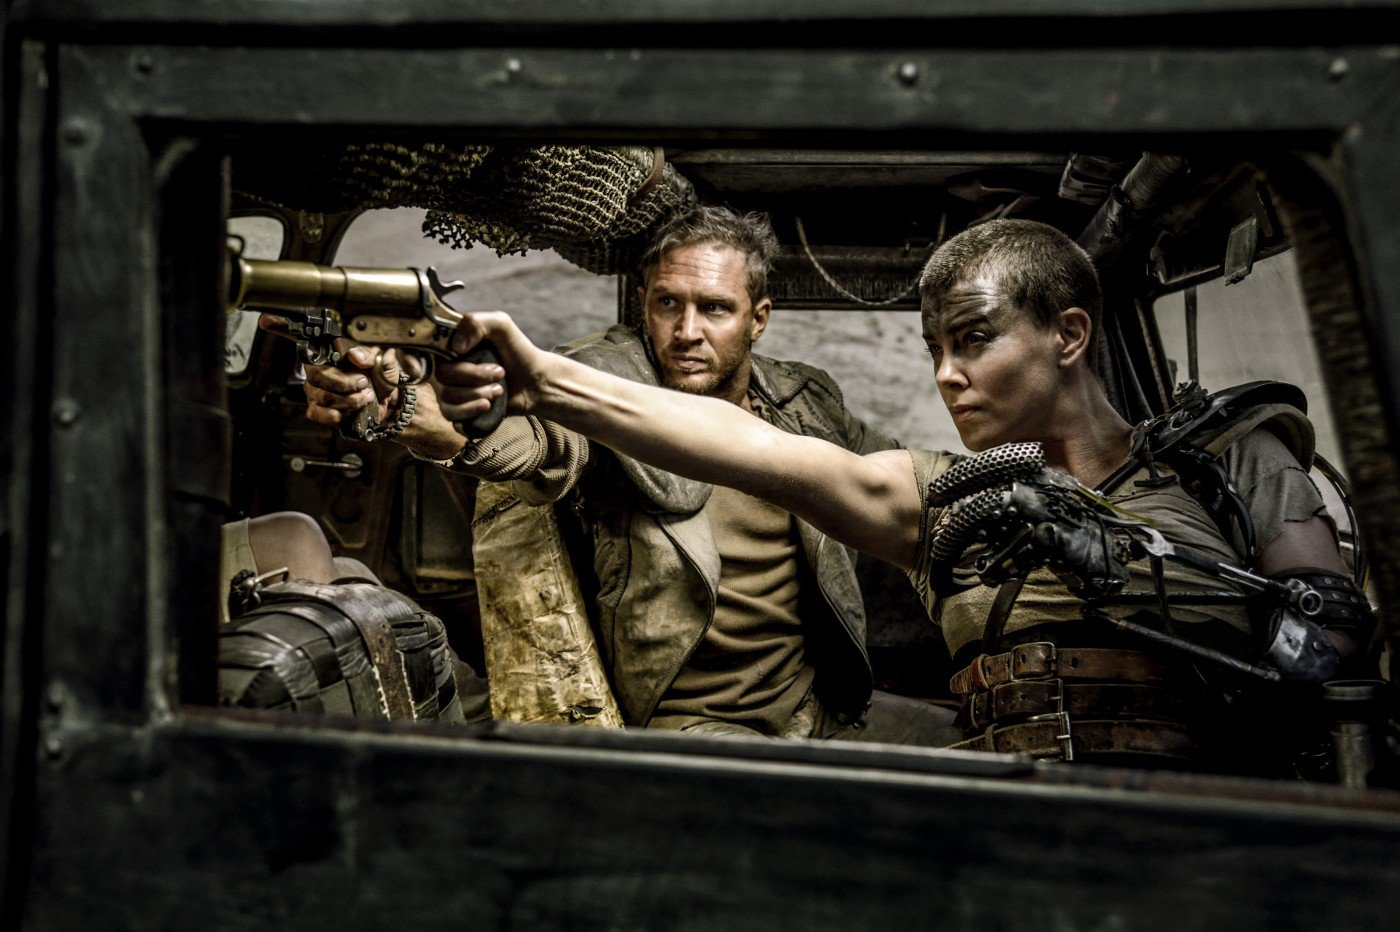 Charlize Theron in Tom Hardy v filmu Pobesneli Max: Cesta besa (Mad Max: Fury Road)